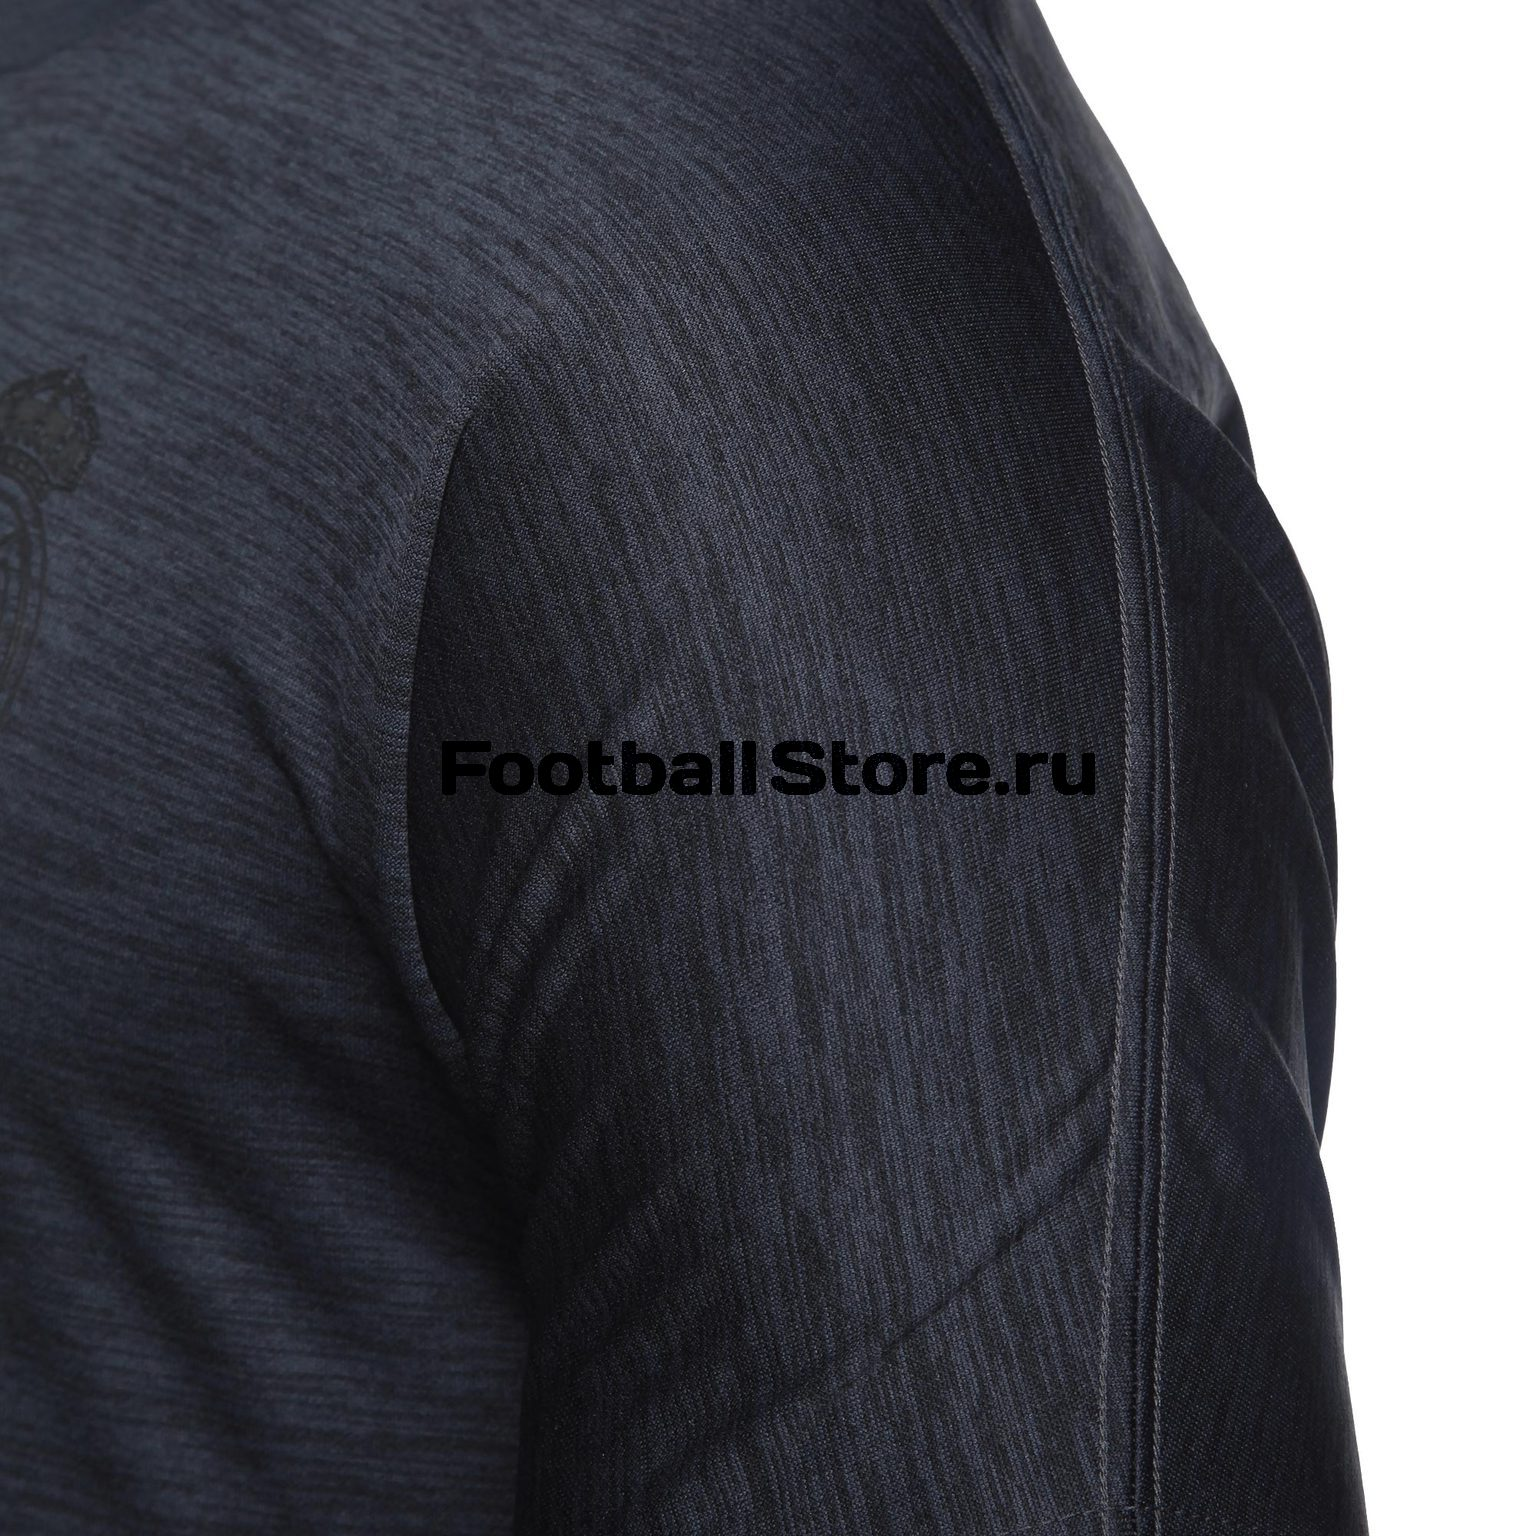 Футболка Adidas Real Madrid 2018/19